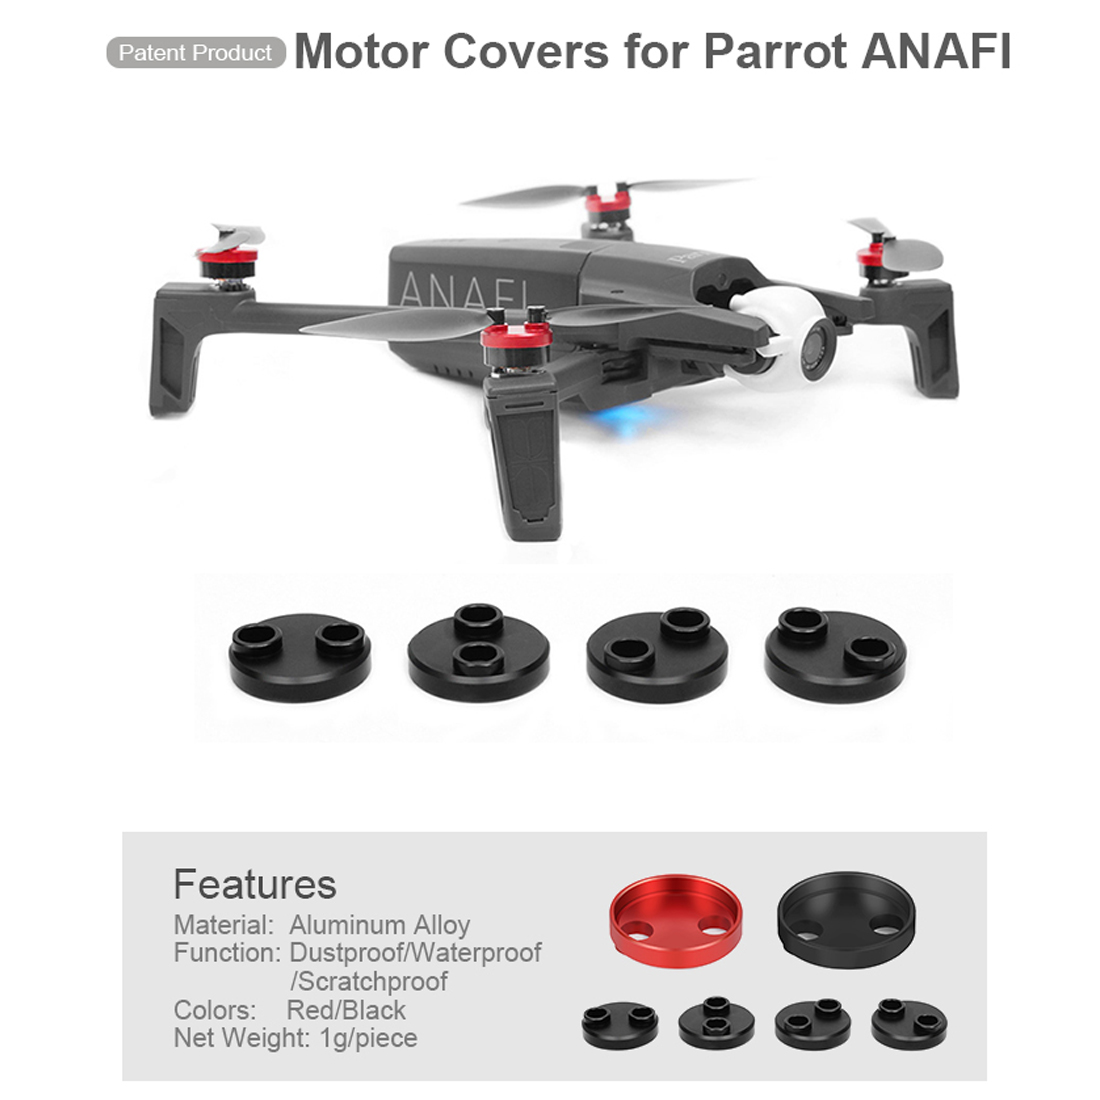 4x For Parrot Anafi Metal Motor Covers Dustproof Protective Cover Accessories